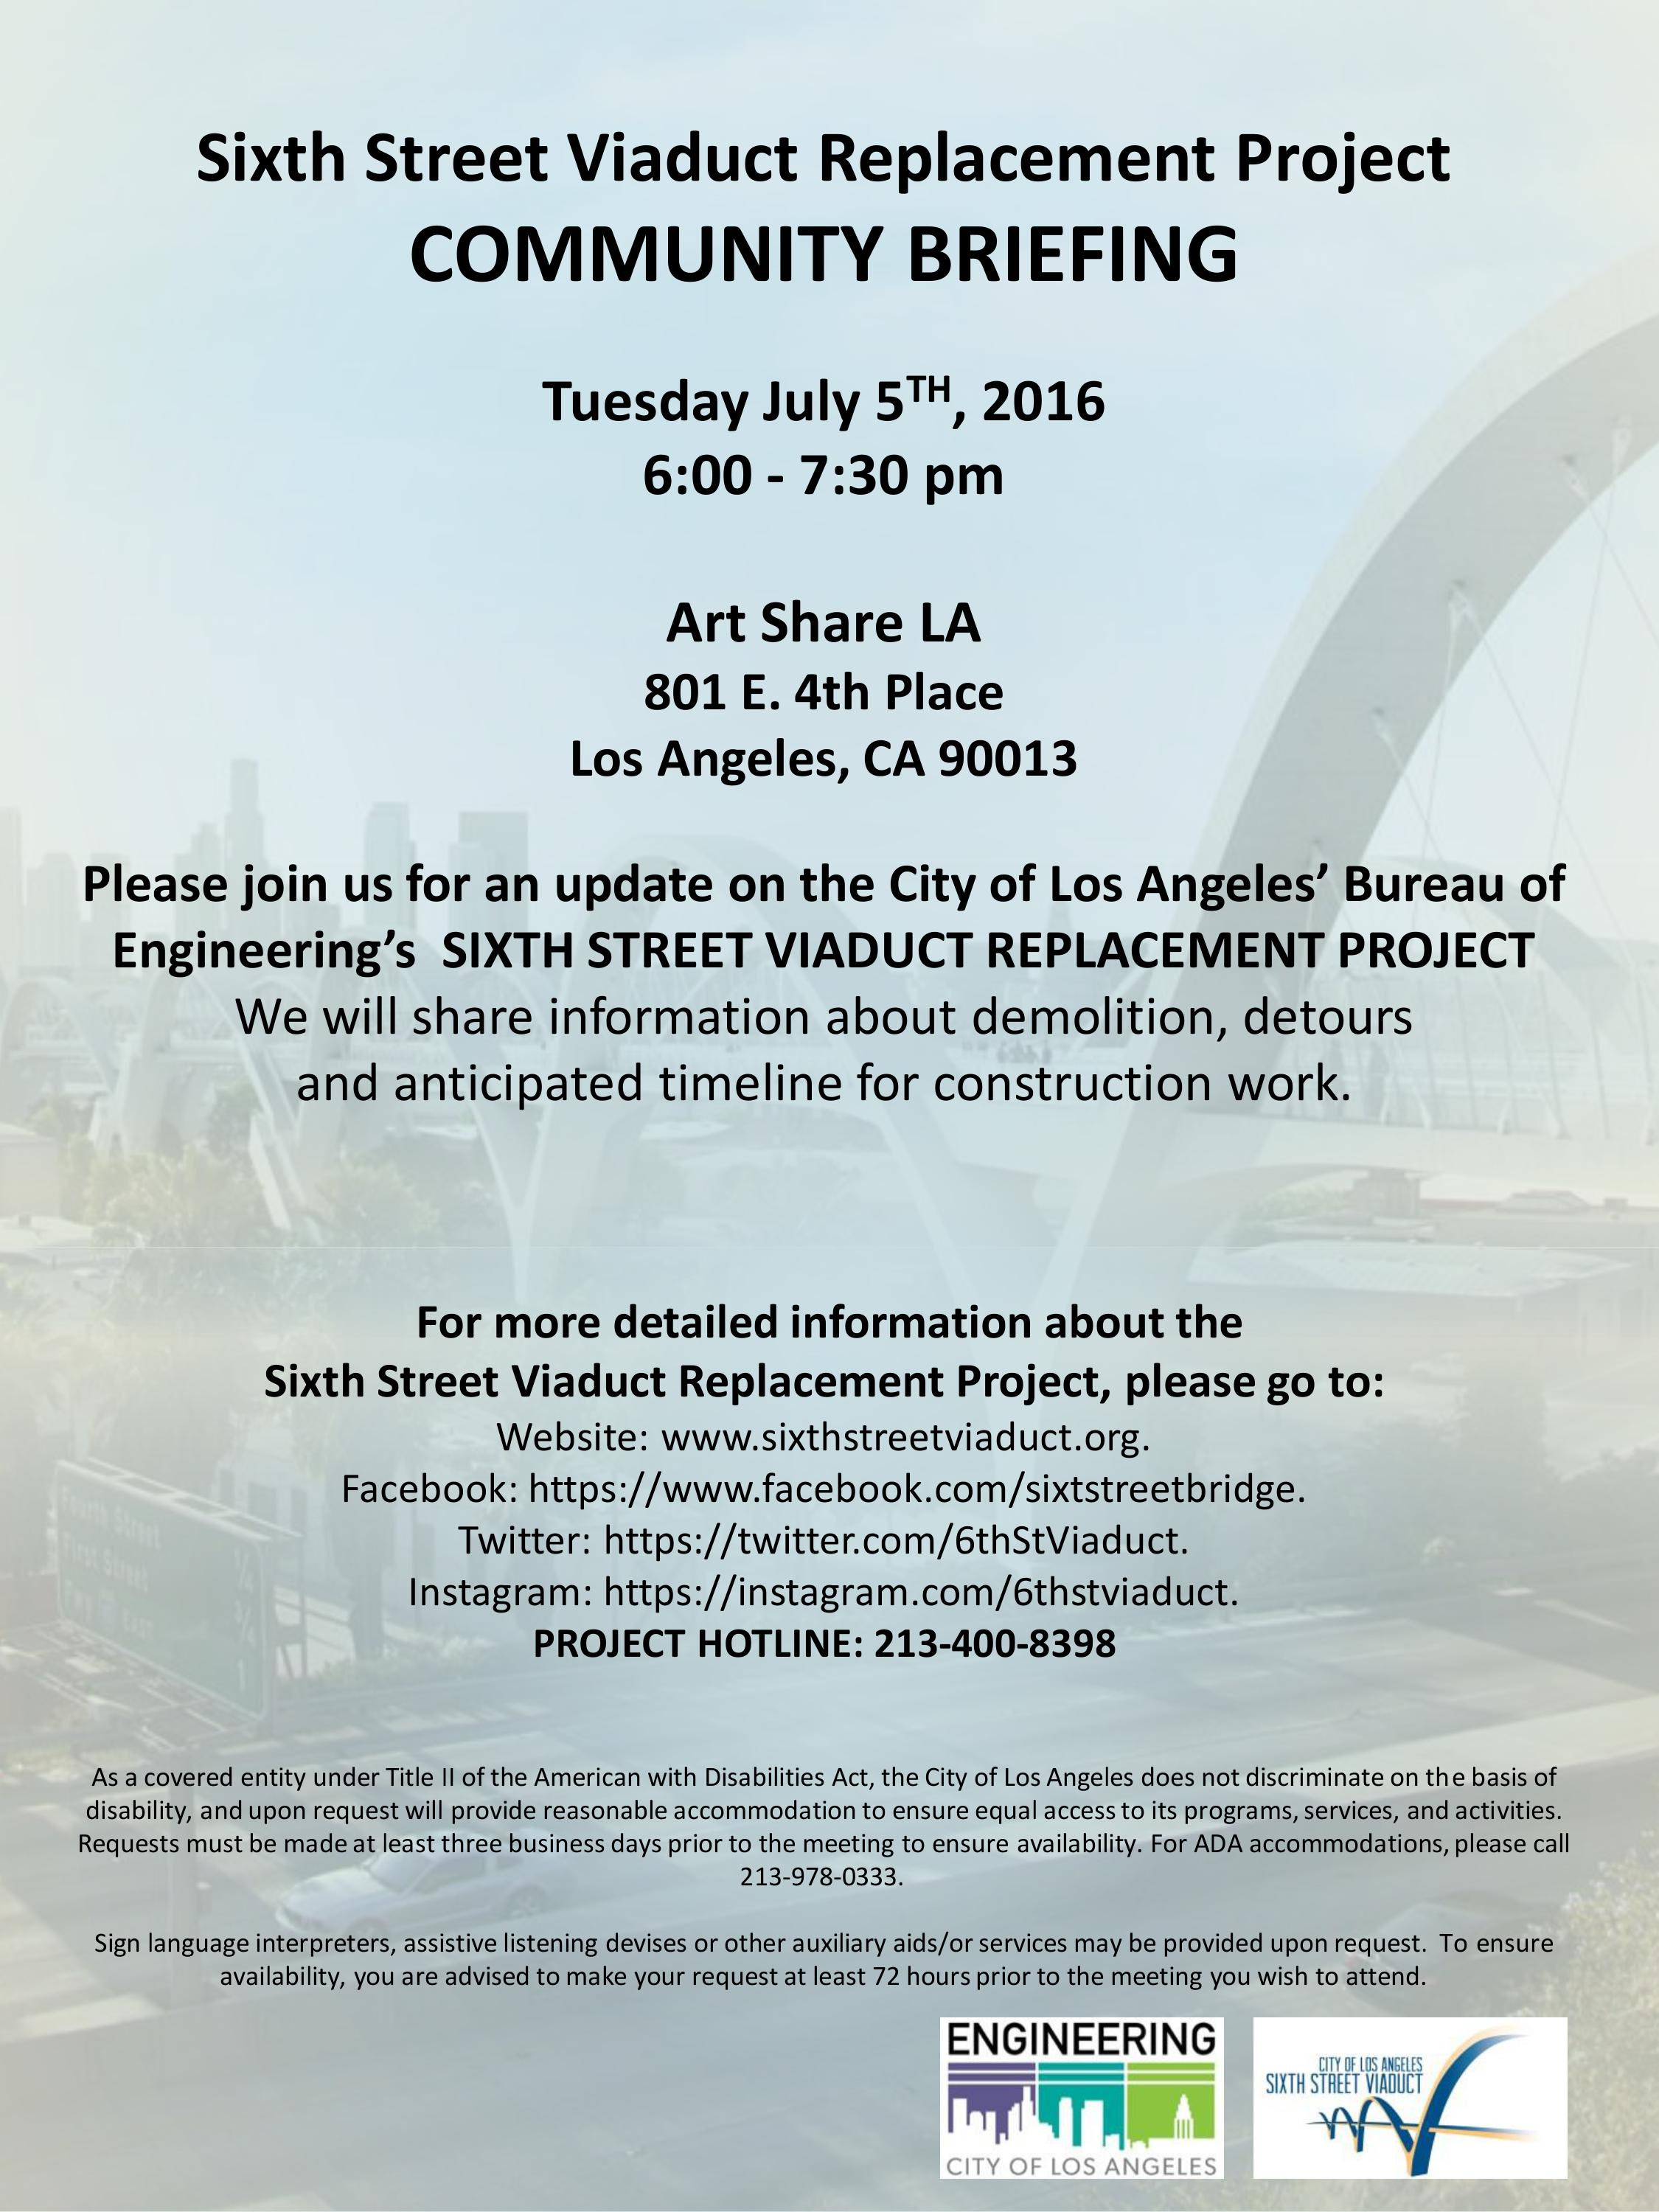 Sixth_Street_Viaduct_replacement_Project_Community_Briefing.jpg